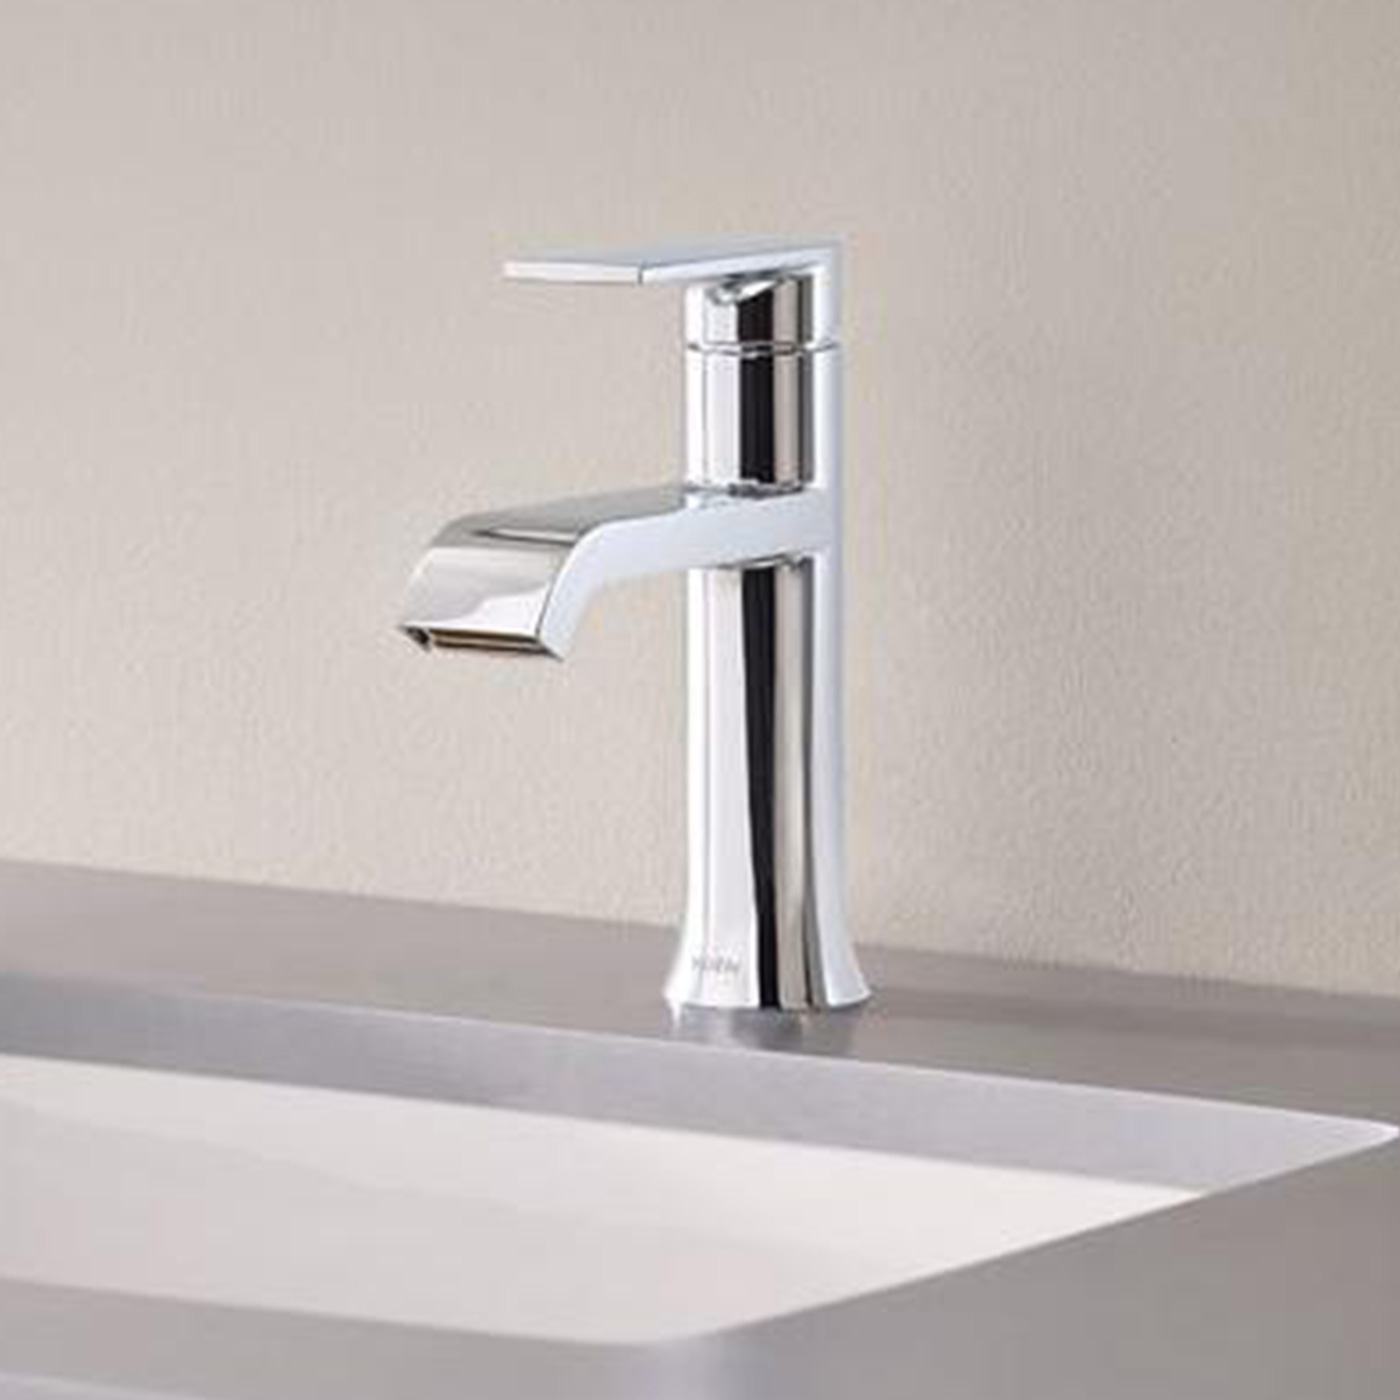 Glacier Bay Dylan Single Handle Pull Down Sprayer Kitchen Faucet homedepot.com p Glacier Bay Dylan SingleFaucet 305514649